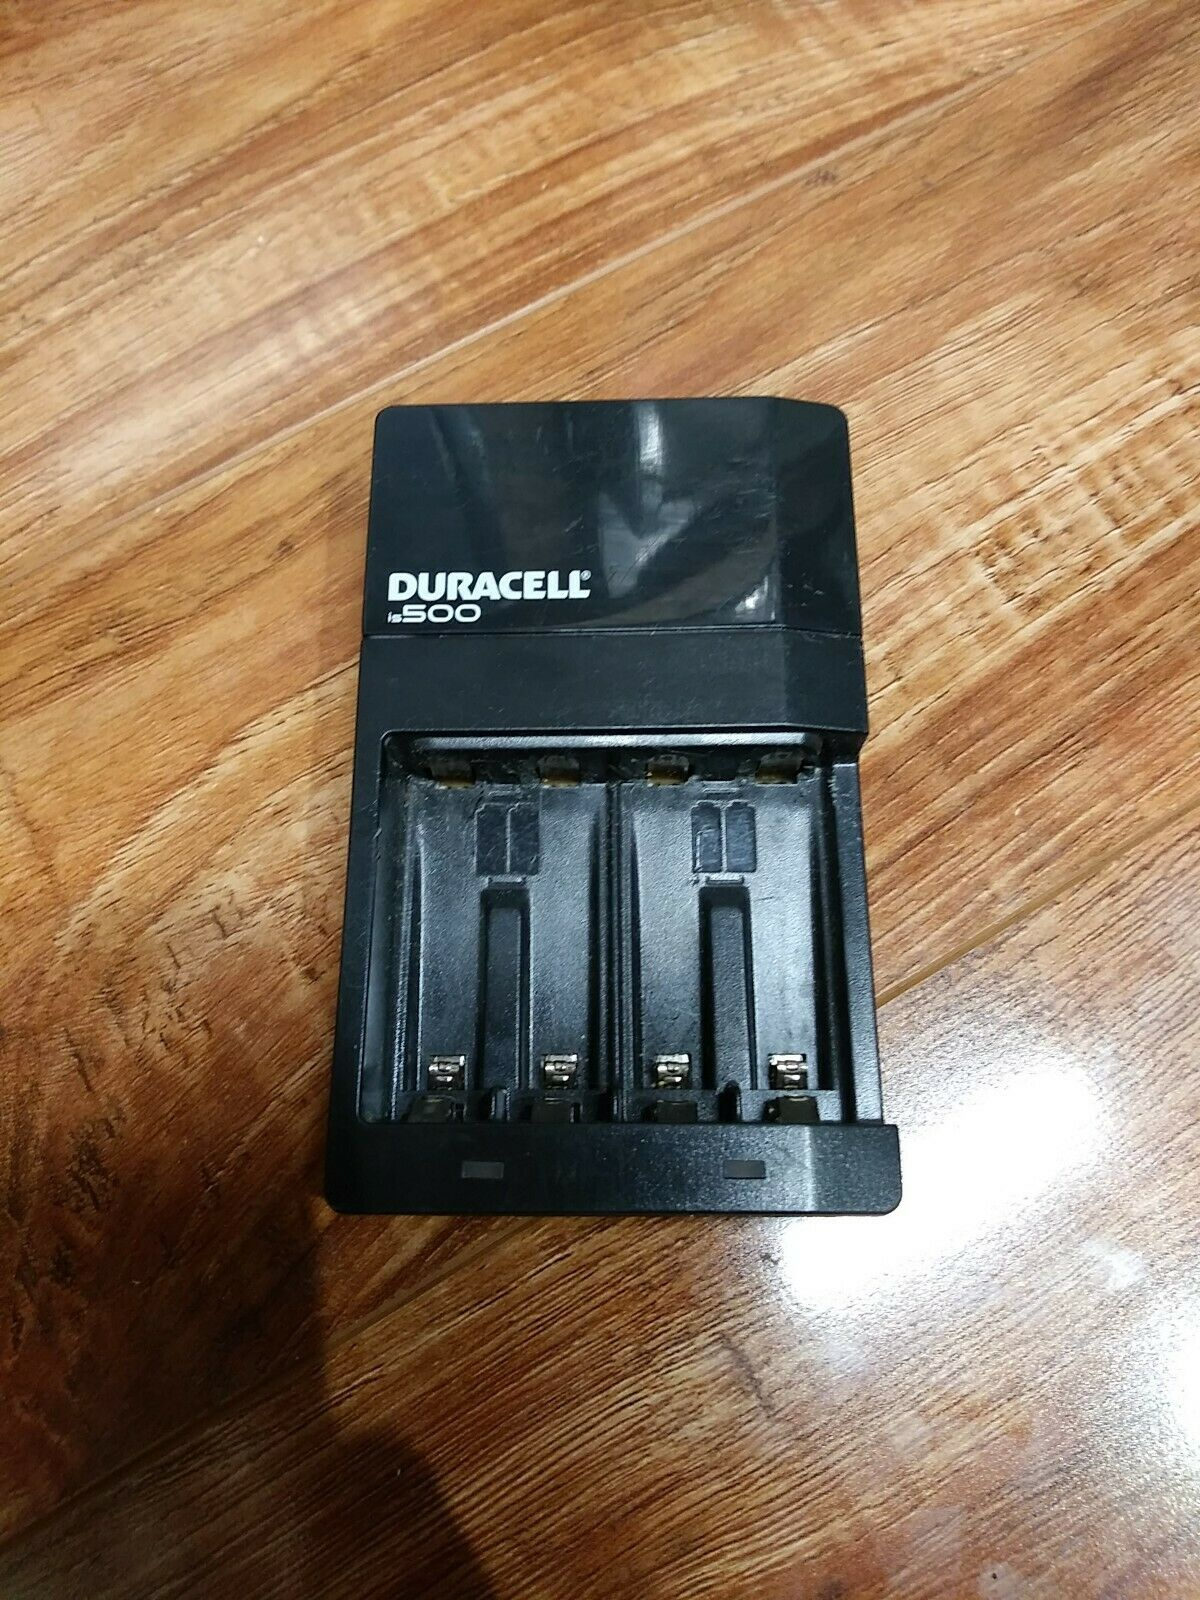 #R) Duracell is500 Battery Charger Plug In Model #CEF7NA1